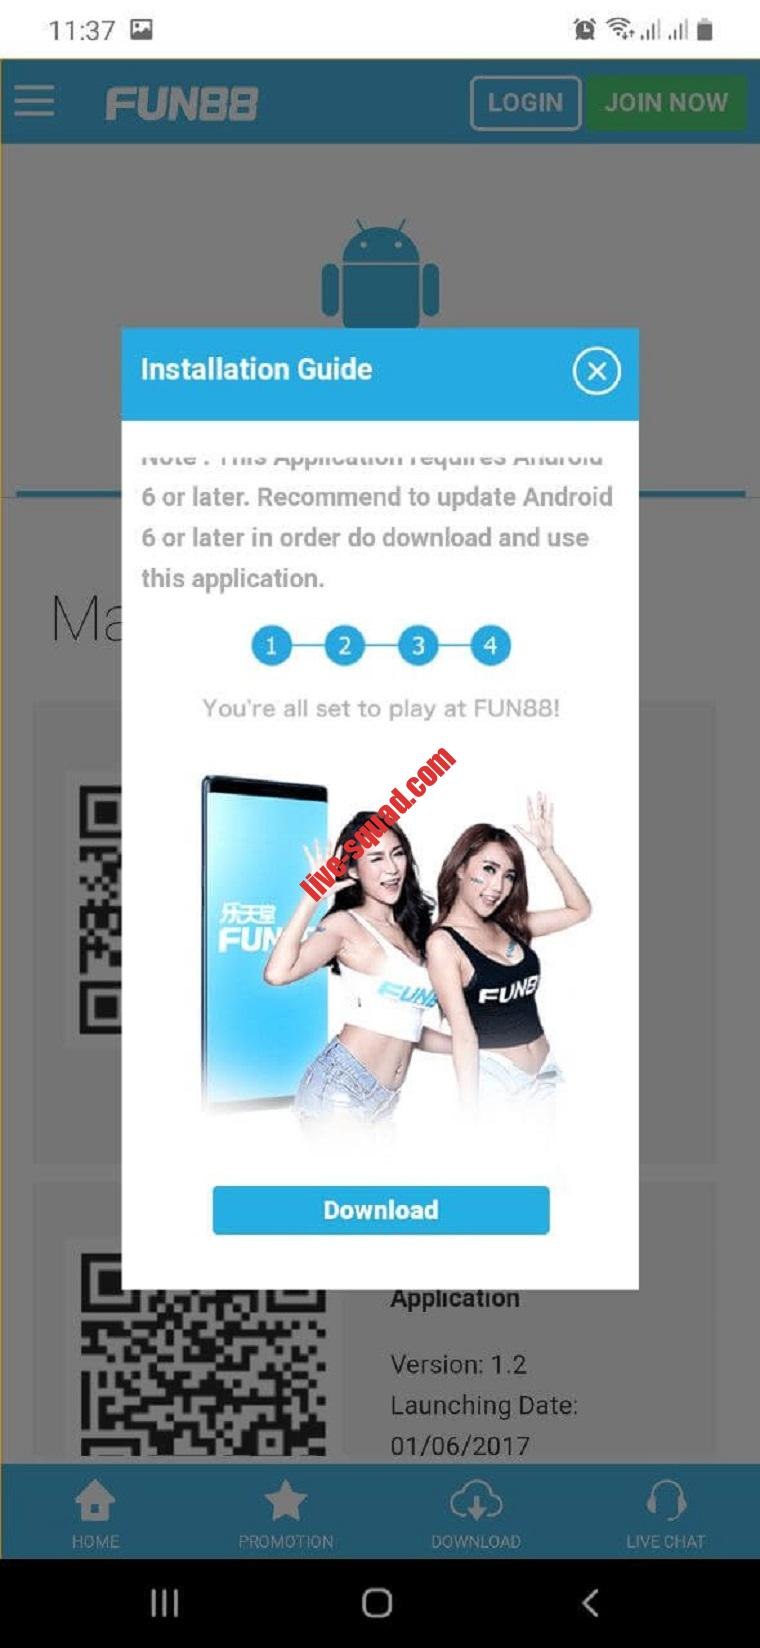 Fun88 Android - buoc 2